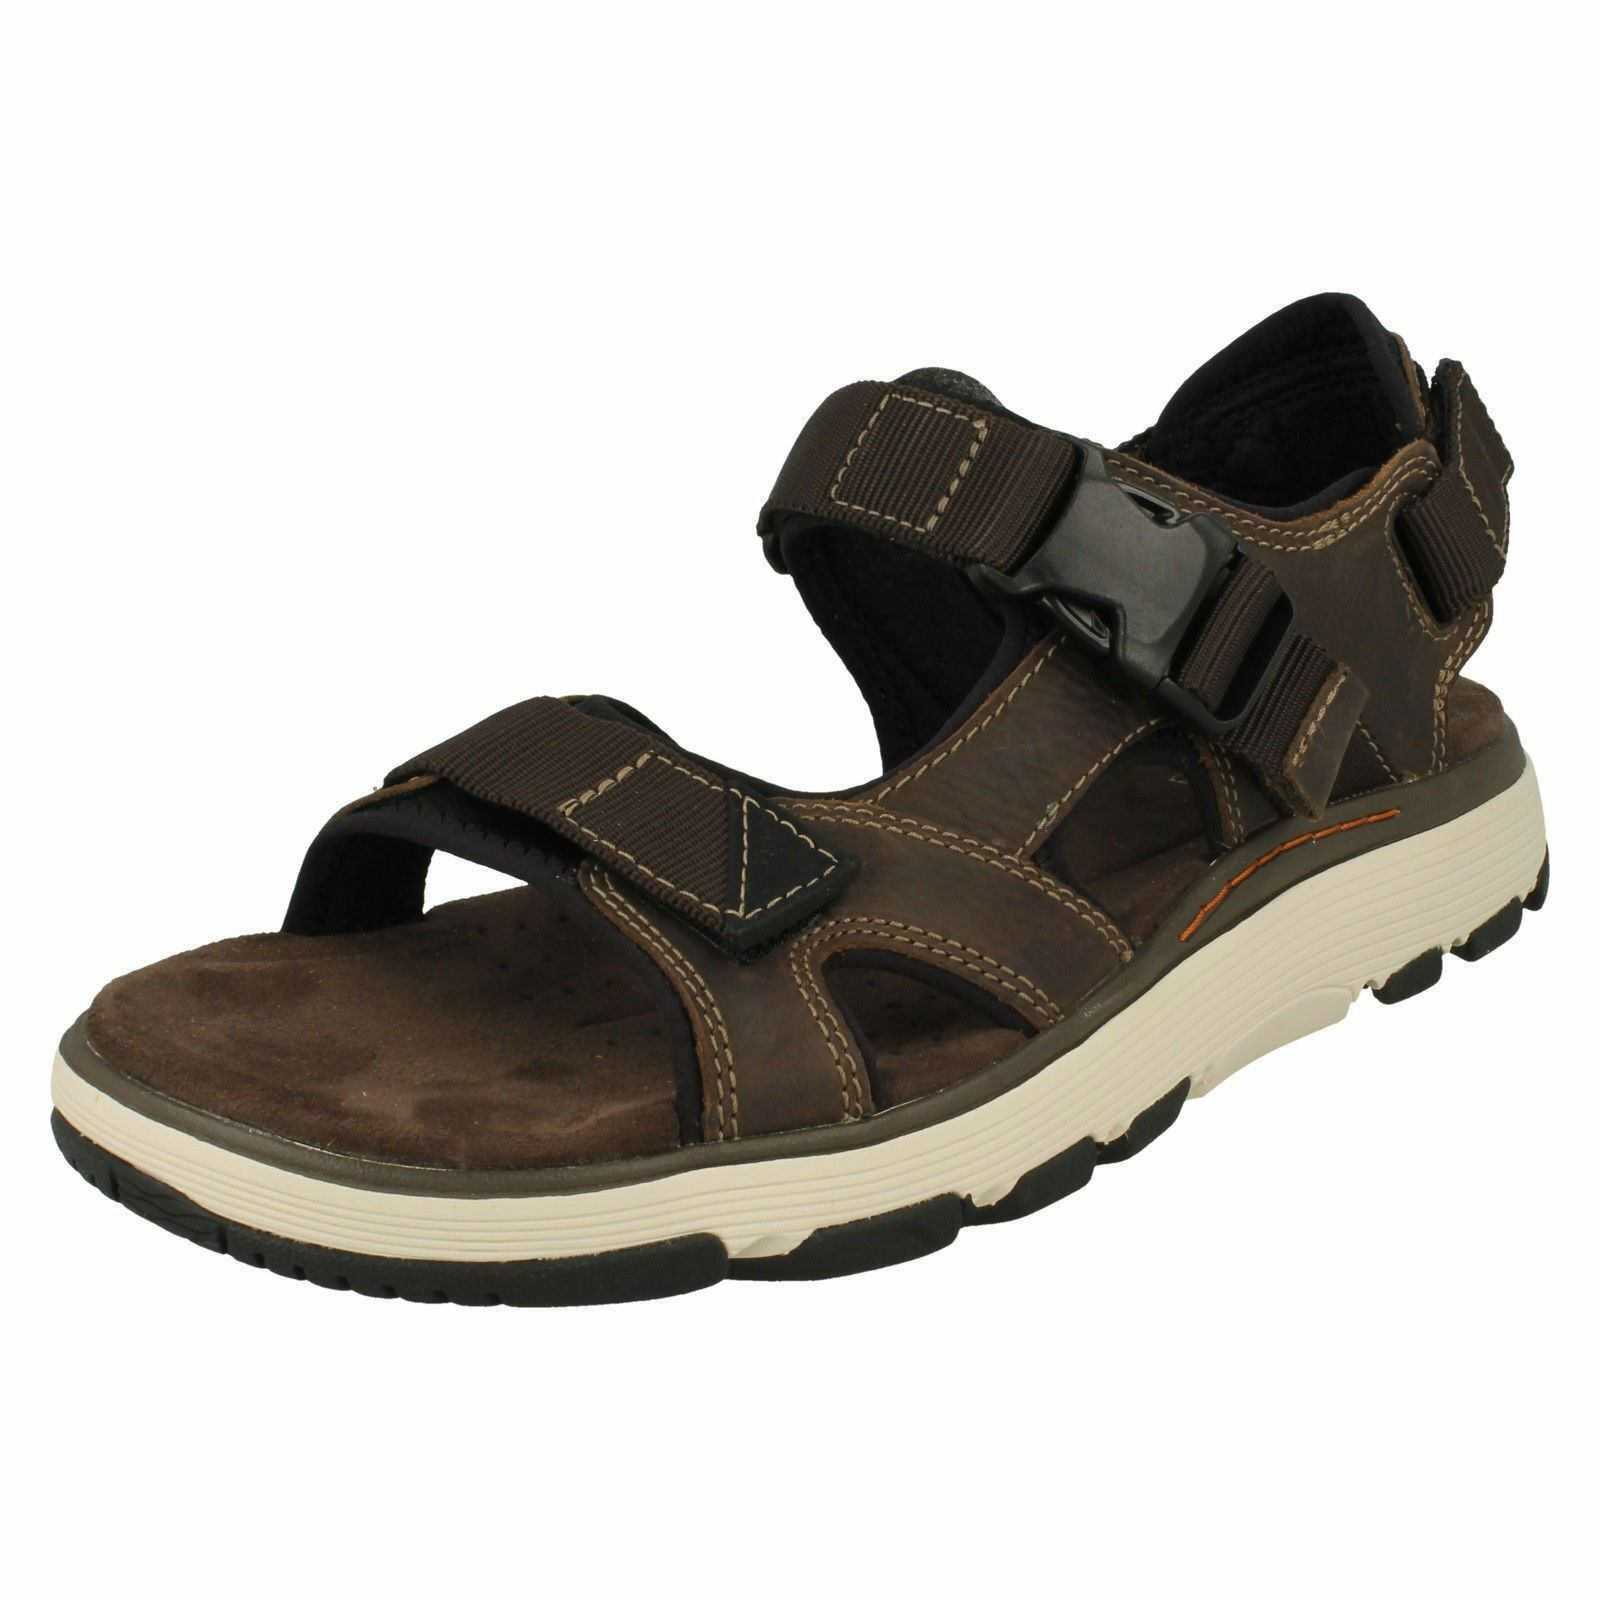 Mens Clarks Un Trek Bar Olive Leather Casual Strapped Sandals